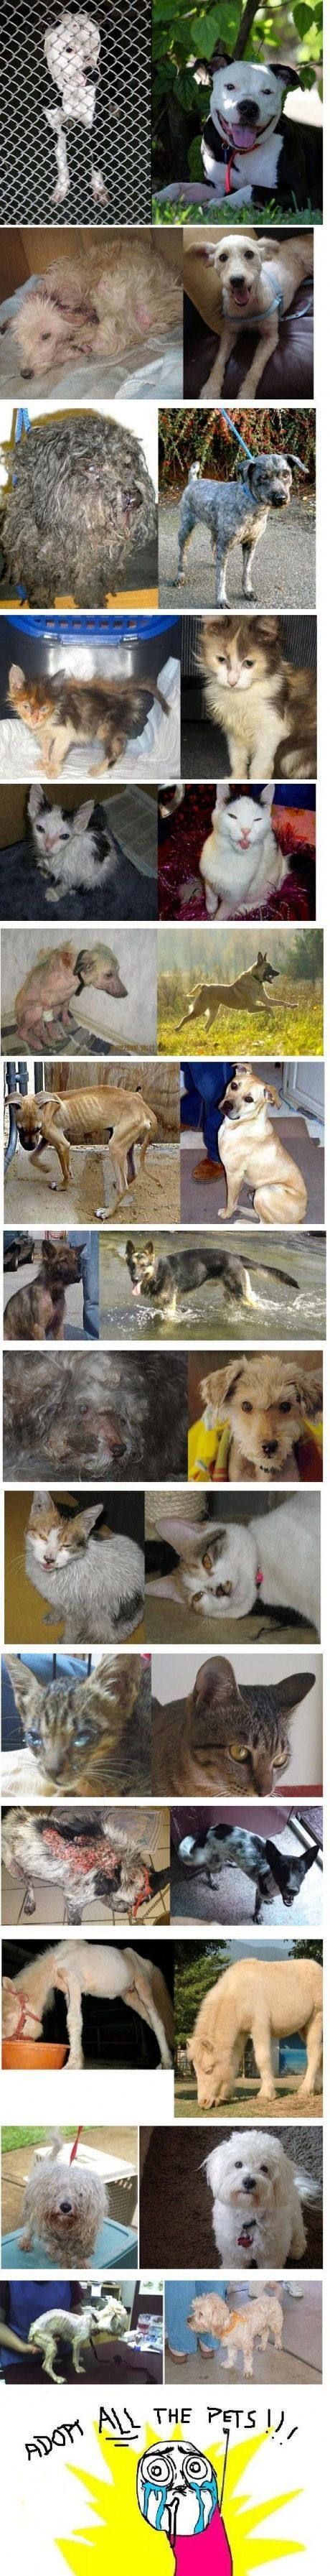 Before and after rescue photos. Adopt, don't shop.